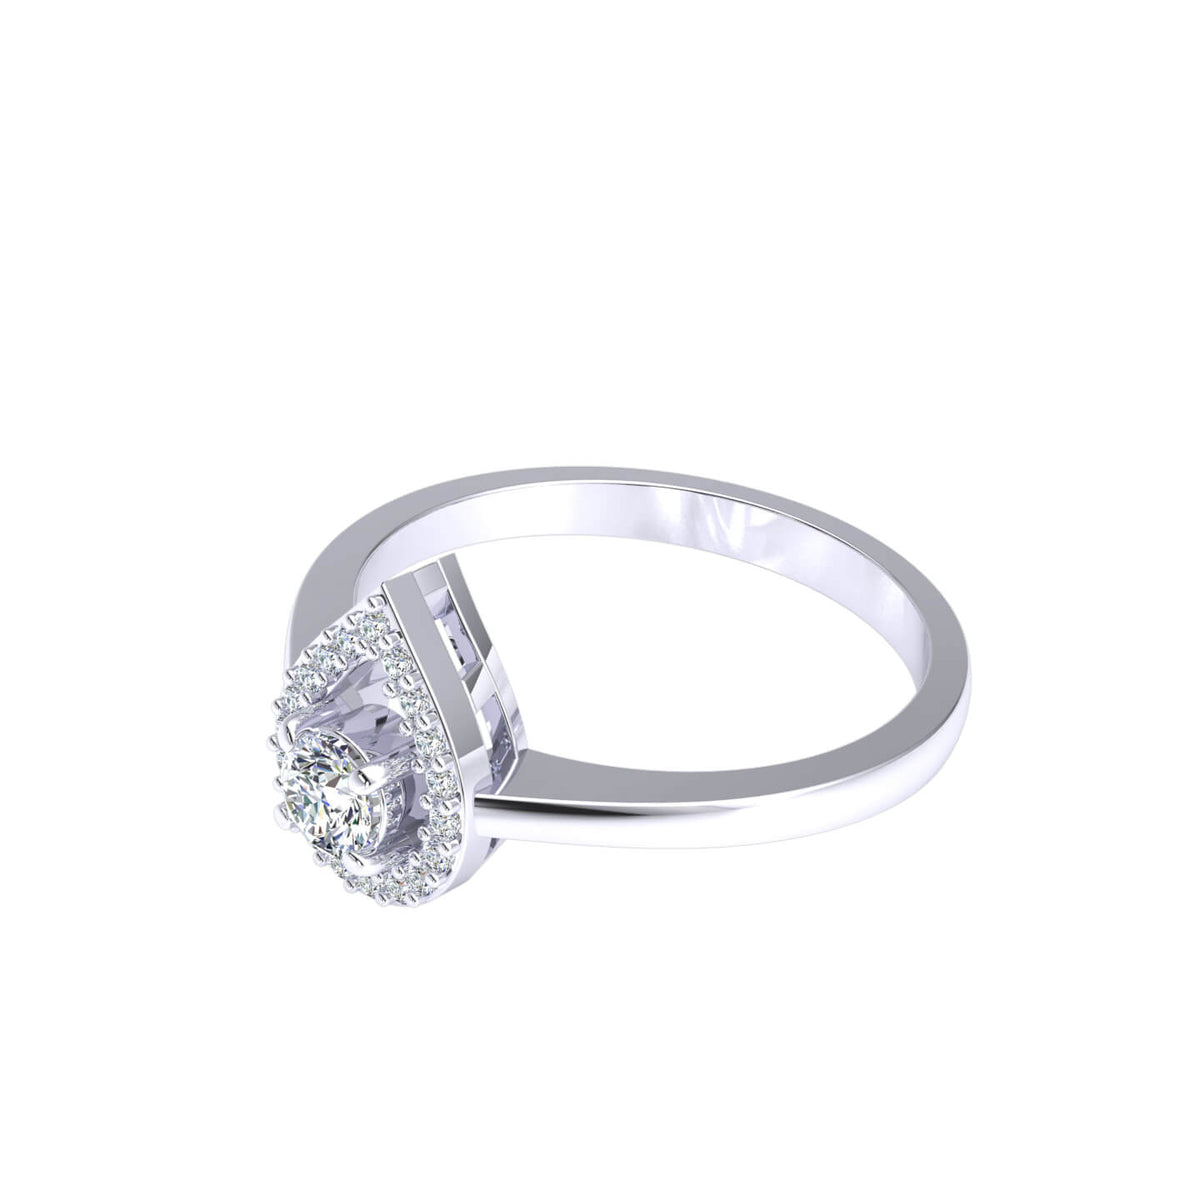 0.30 Ct Round GH I1-I2 Diamond Halo Solitaire Fancy Ring For Women 925 Silver